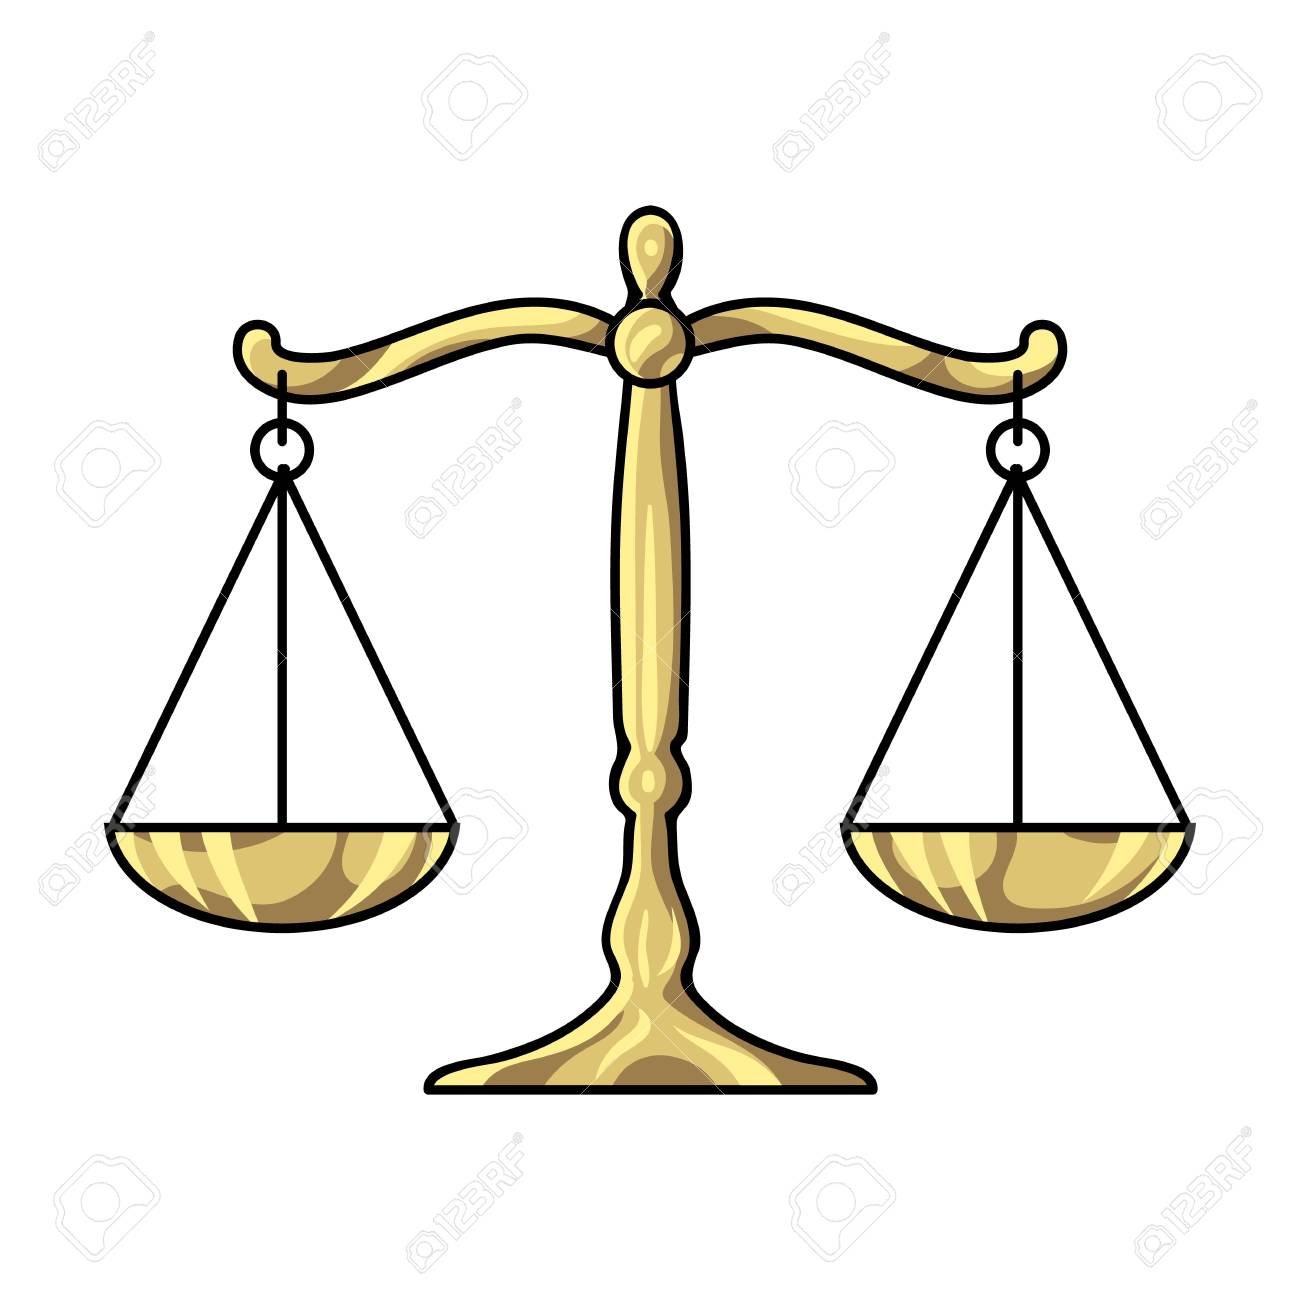 Scales Of Justice Icon In Cartoon Style Isolated On White Background. Crime  Symbol Vector Illustration